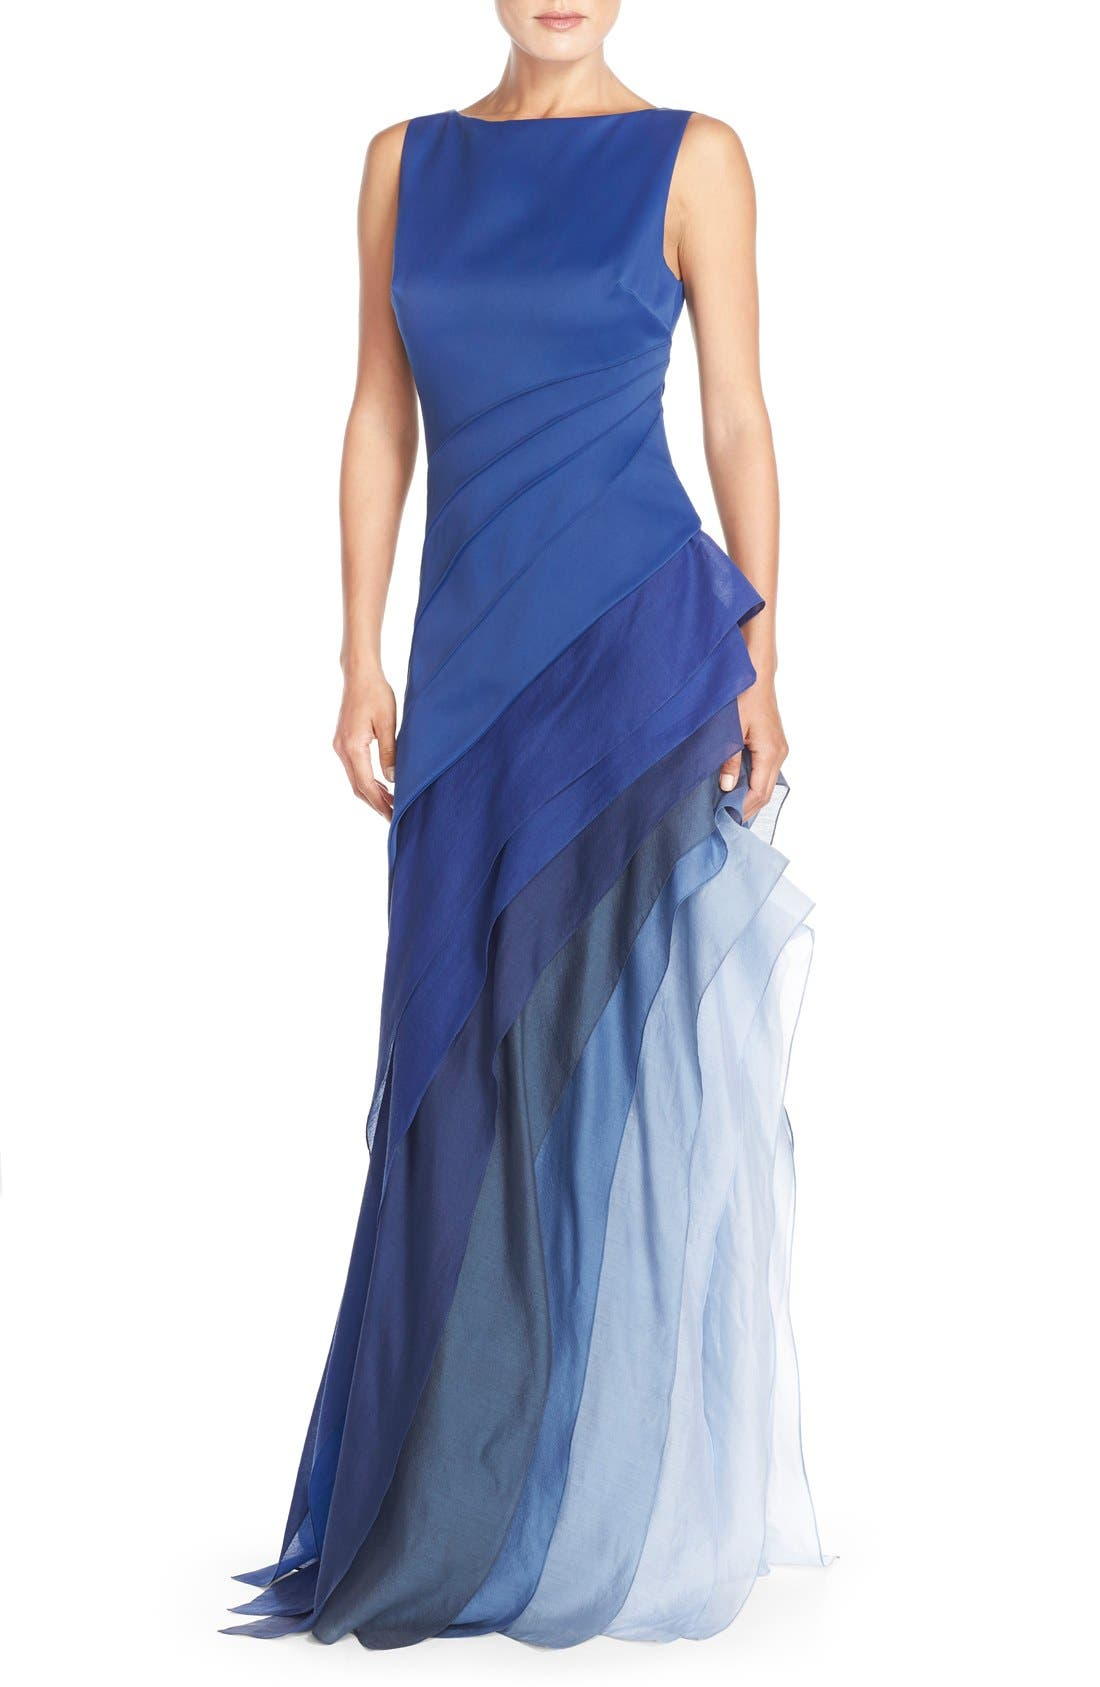 Alternate Image 1 Selected - Halston Heritage Asymmetrical Satin & Voile A-Line Gown